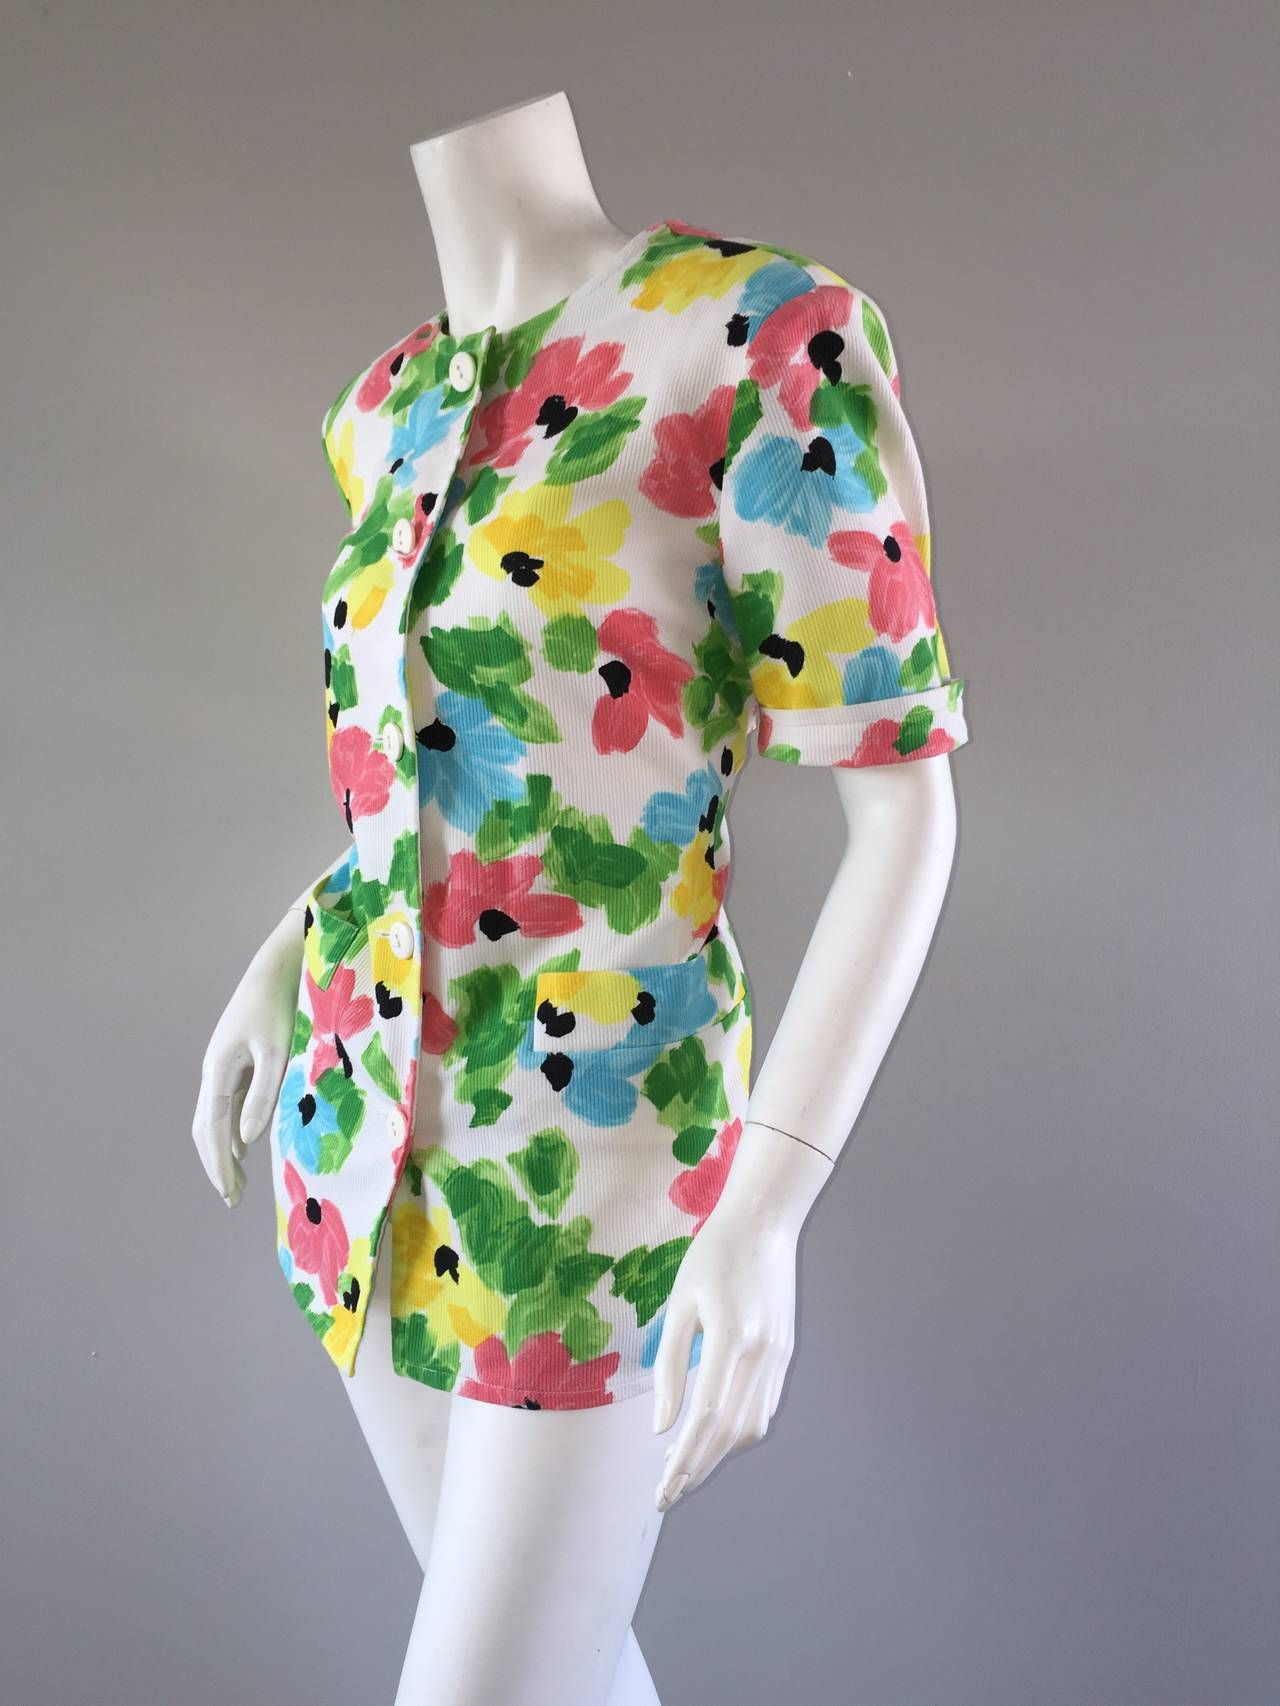 Vintage Courreges Floral Watercolor Short Sleeve Cotton Jacket For Sale 1